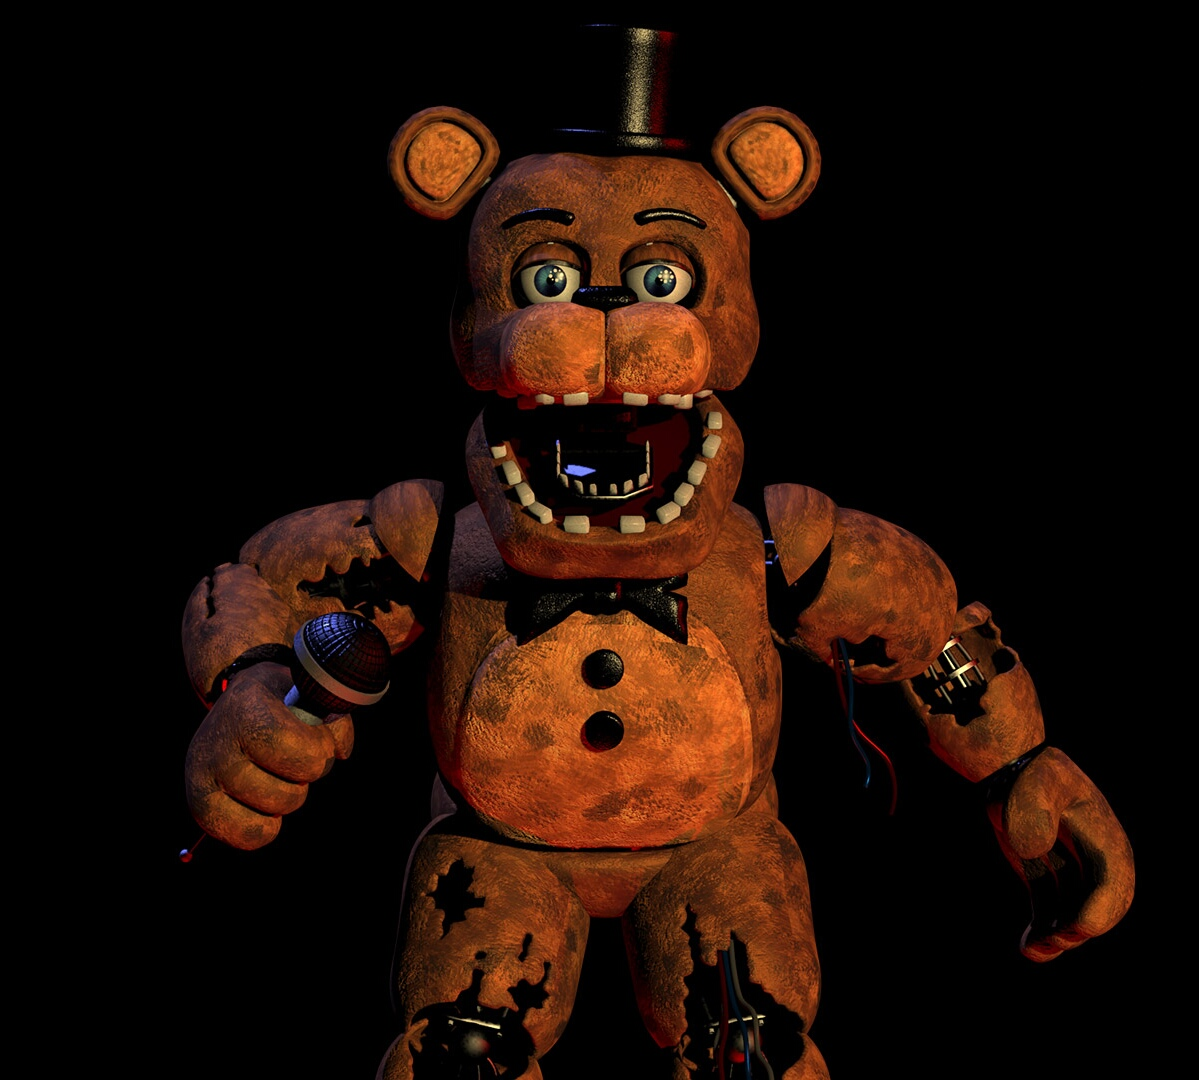 Freddy Fazbear/Withered | Five Nights at Freddy's Wiki | FANDOM